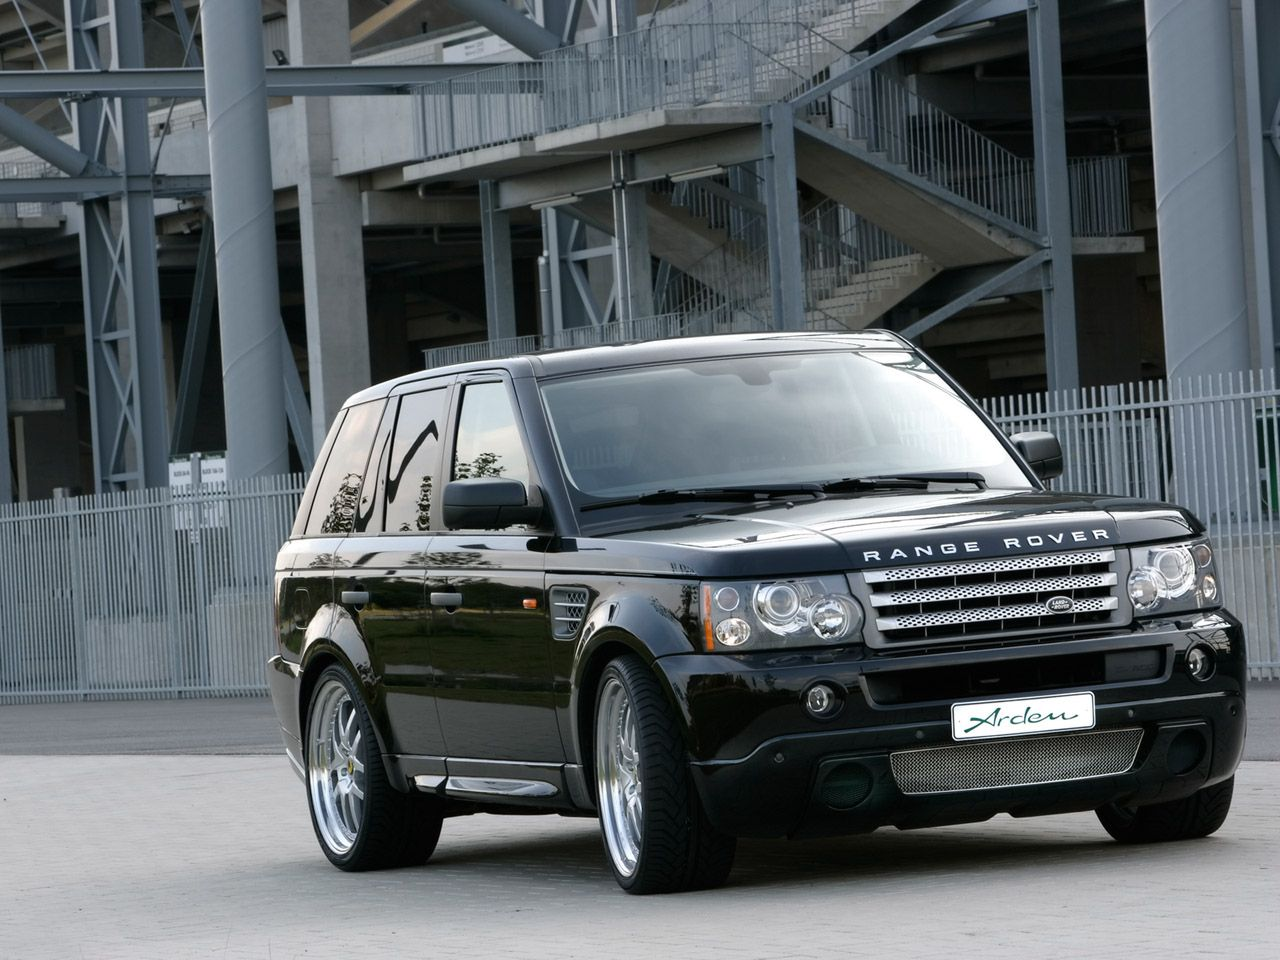 2009 land rover range rover sport pictures see 843 pics for 2009 land rover range rover sport browse interior and exterior photos for 2009 land rover